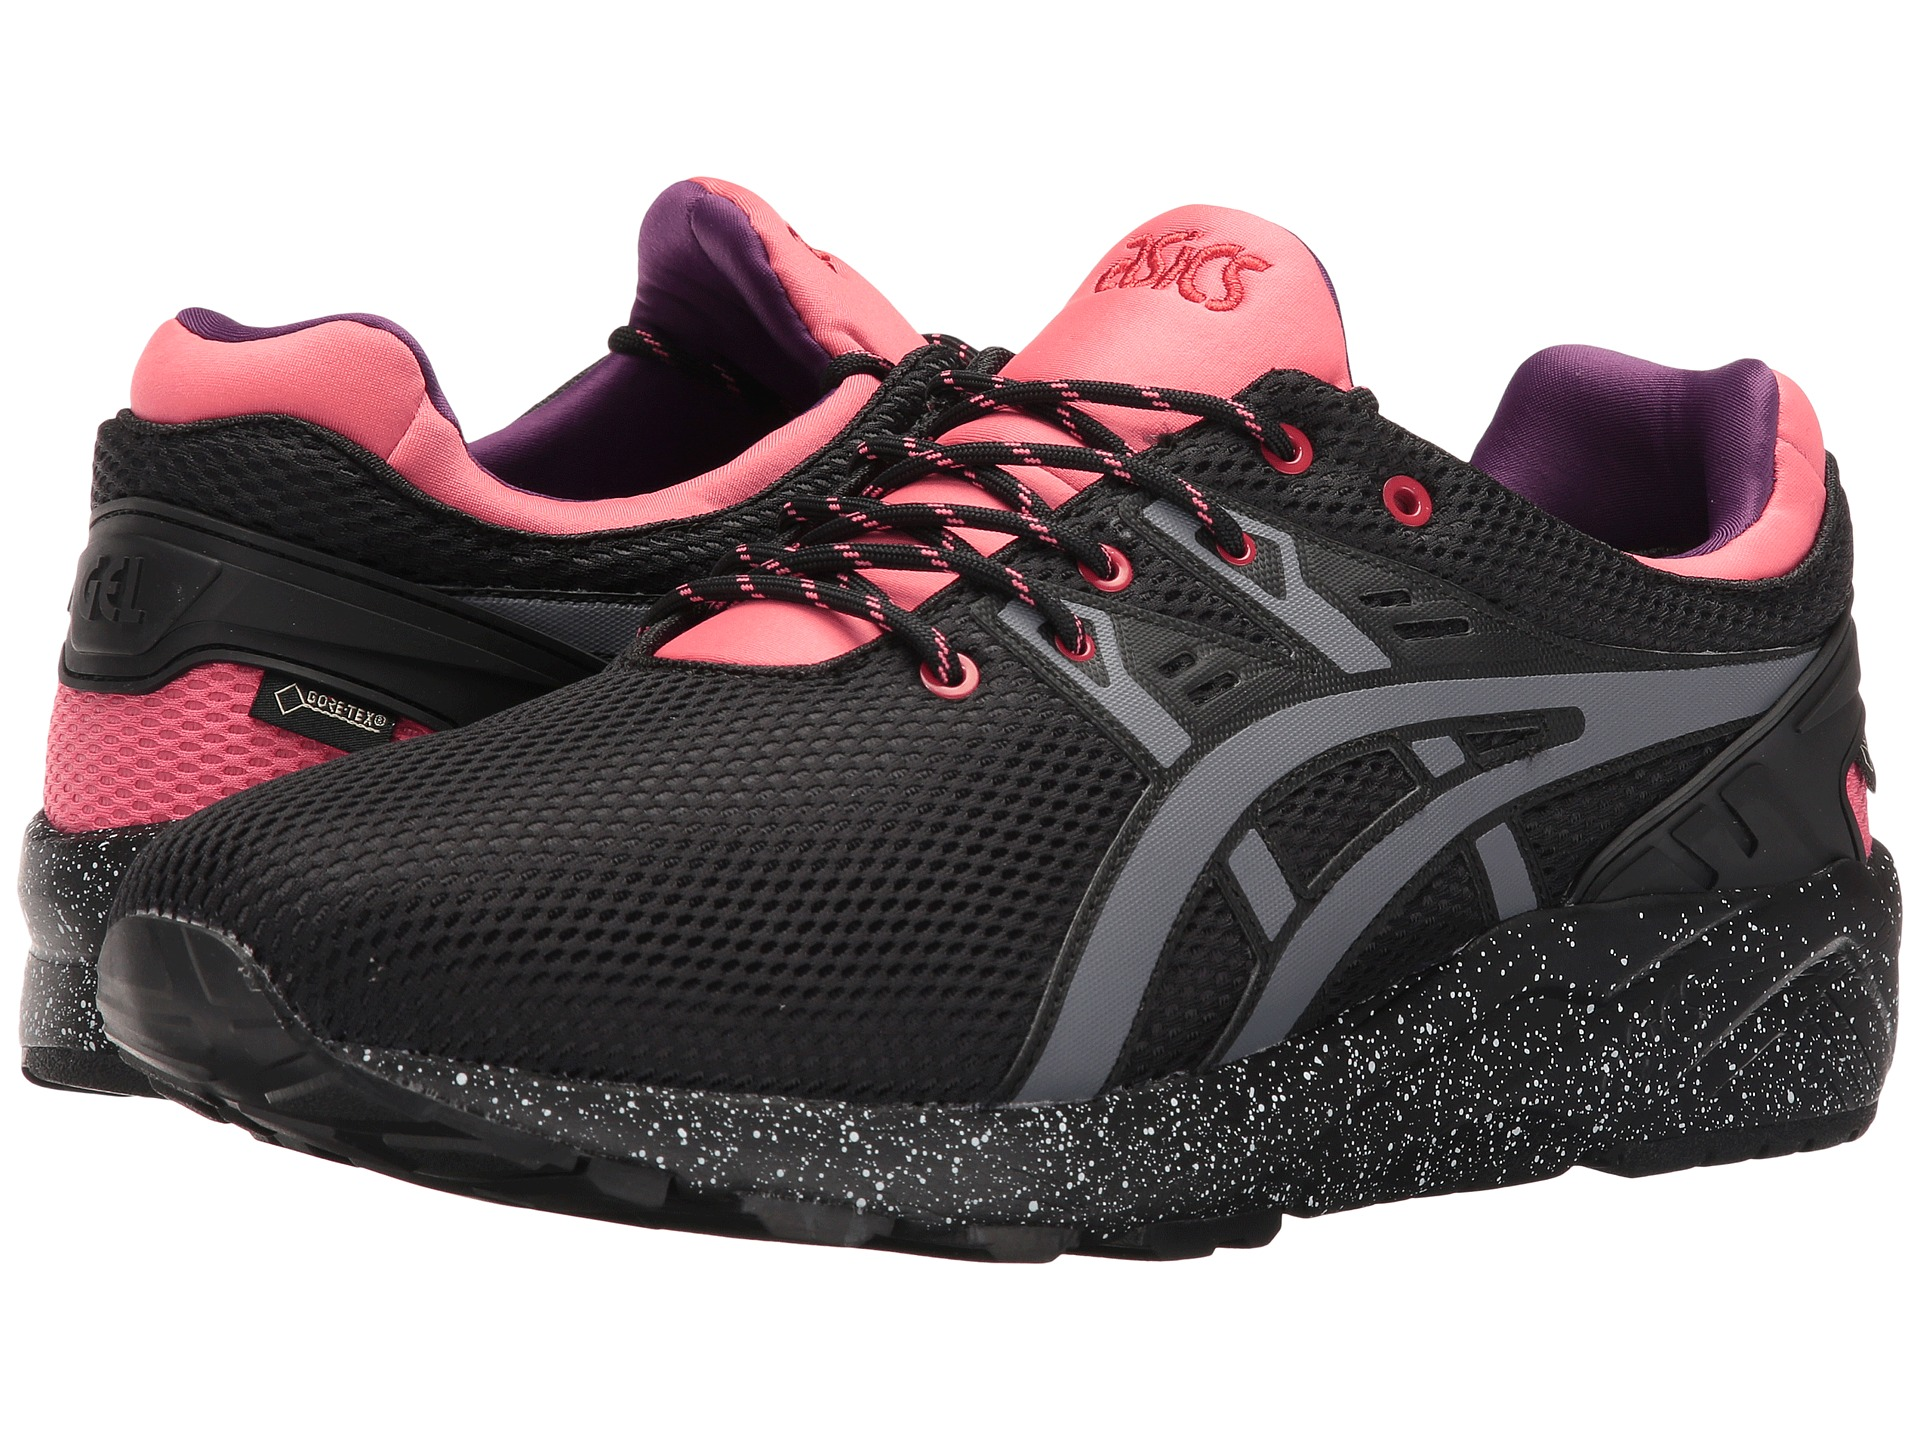 asics tiger gel kayano trainer evo g tx black grey free shipping both ways. Black Bedroom Furniture Sets. Home Design Ideas